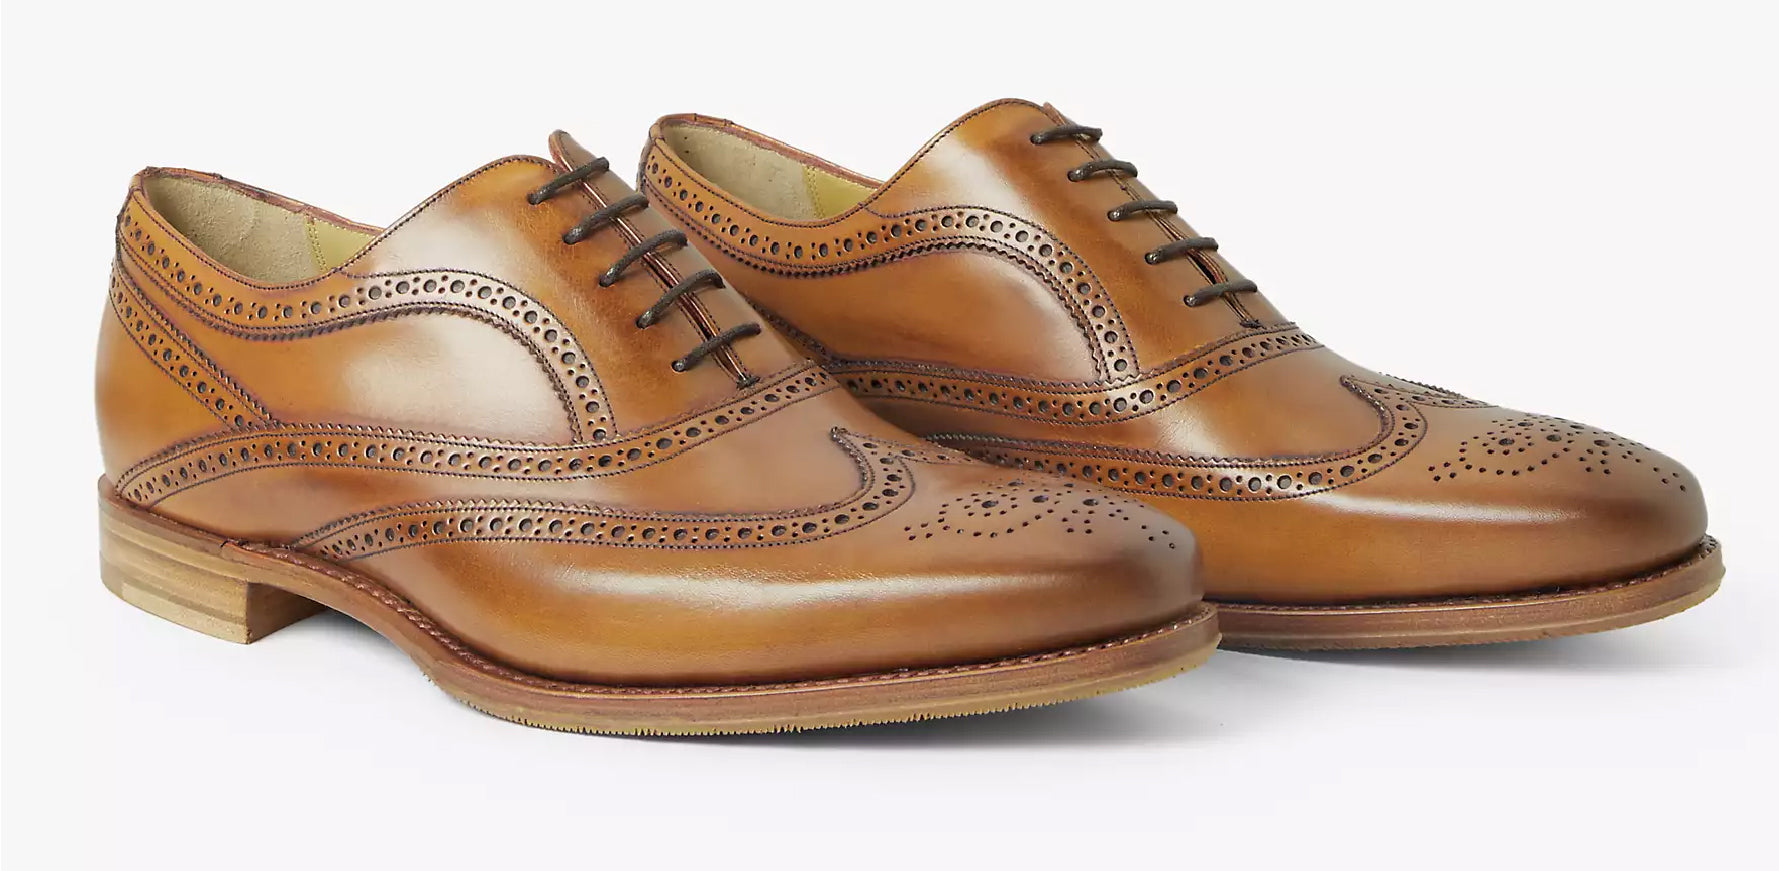 Turing - Men's Brown Leather Brogue Shoe From Barker Tech Collection